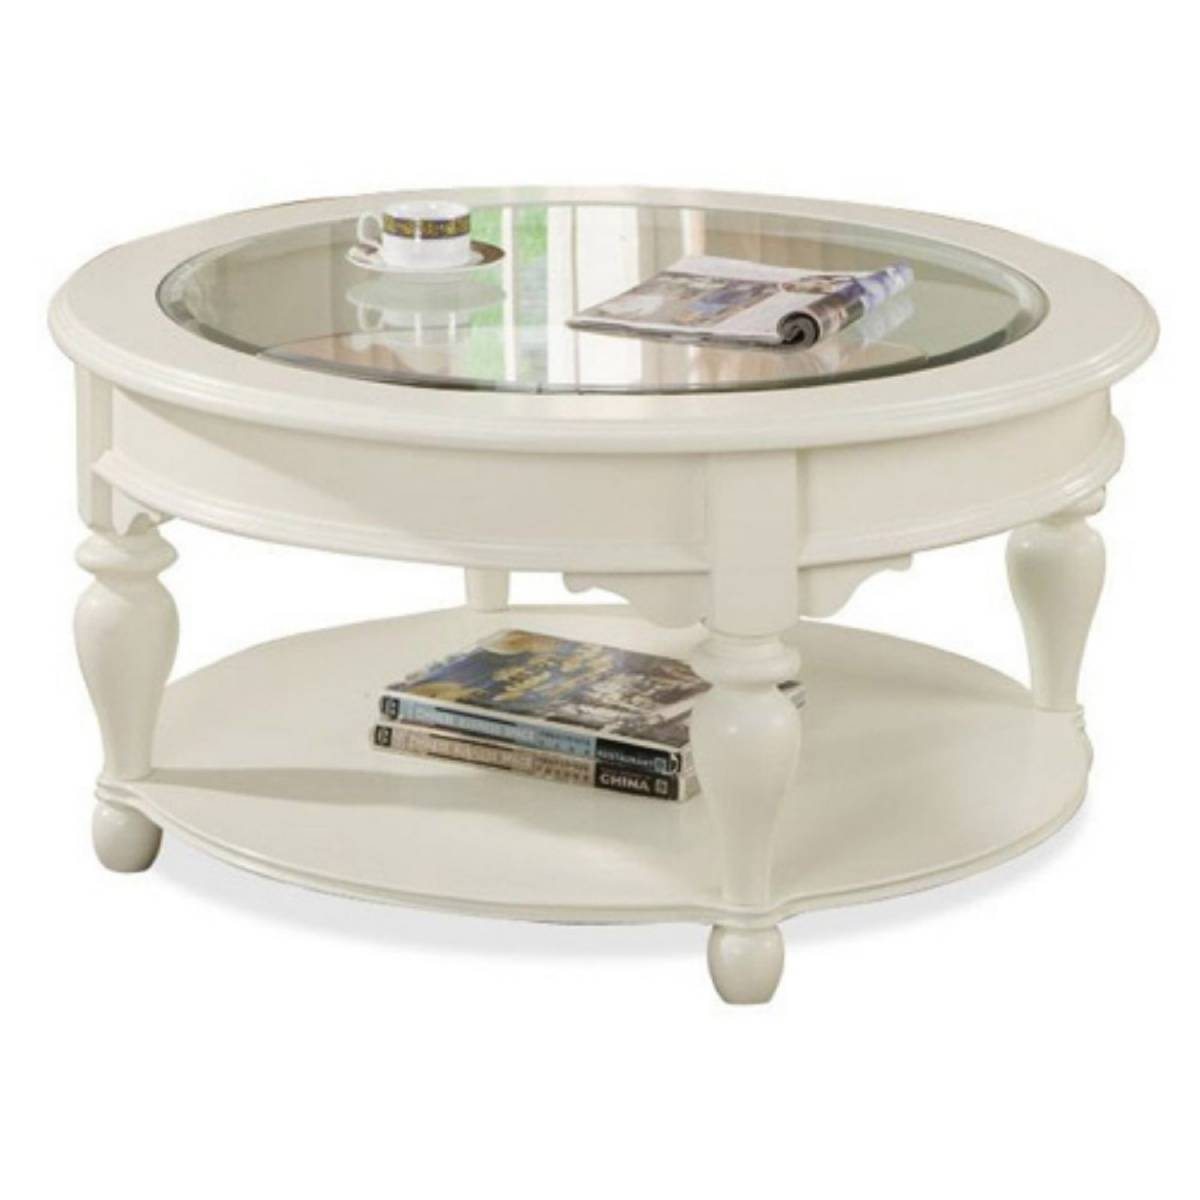 Round Coffee Table Antique White | Coffee Tables Decoration in Circular Coffee Tables With Storage (Image 22 of 30)